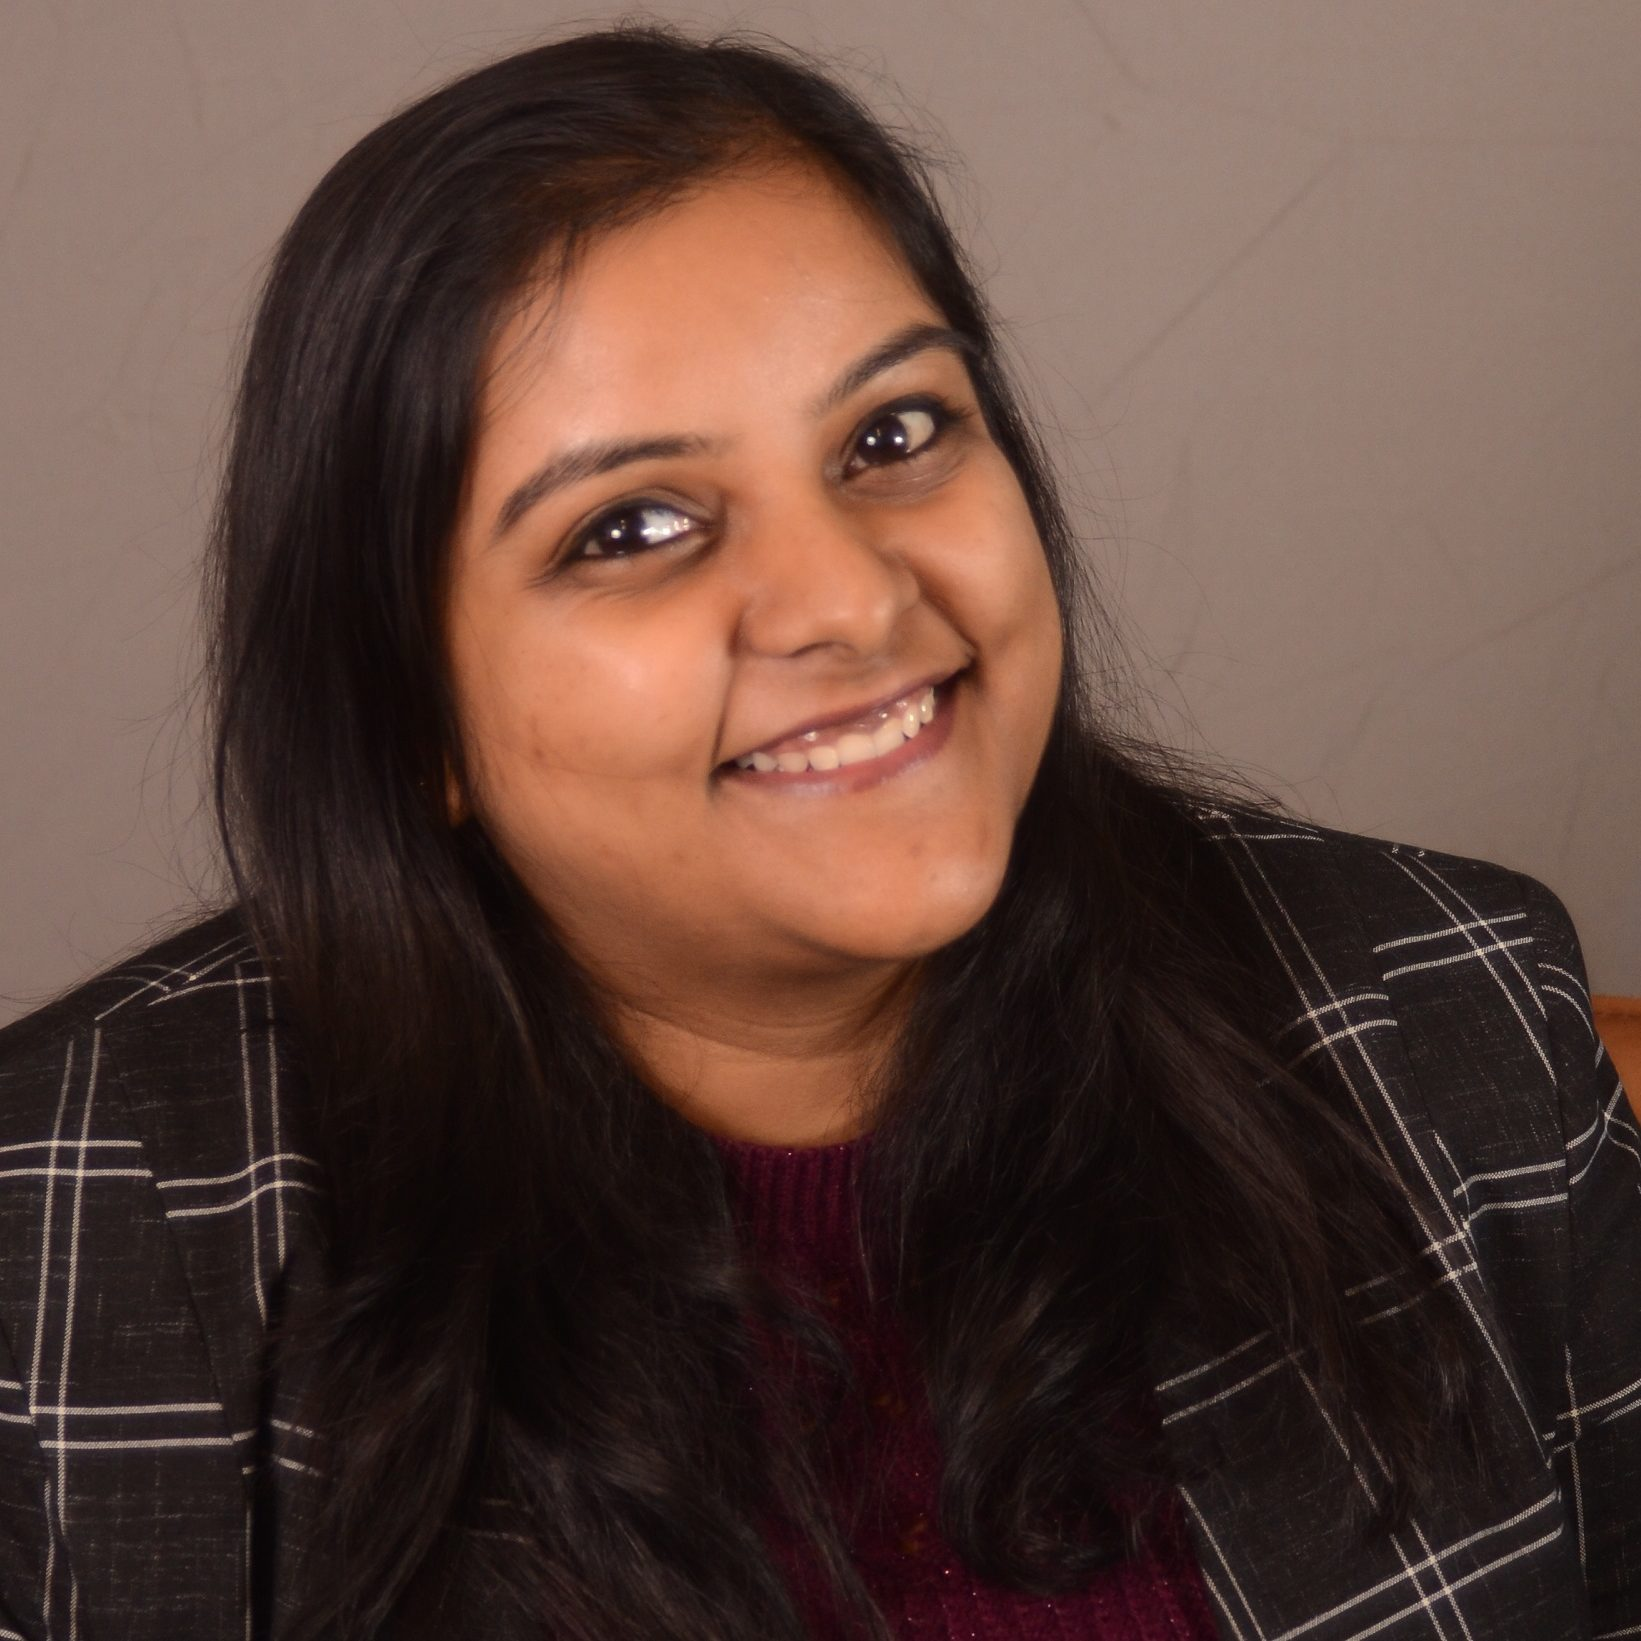 Shruti Verma_Senior Software Engineer